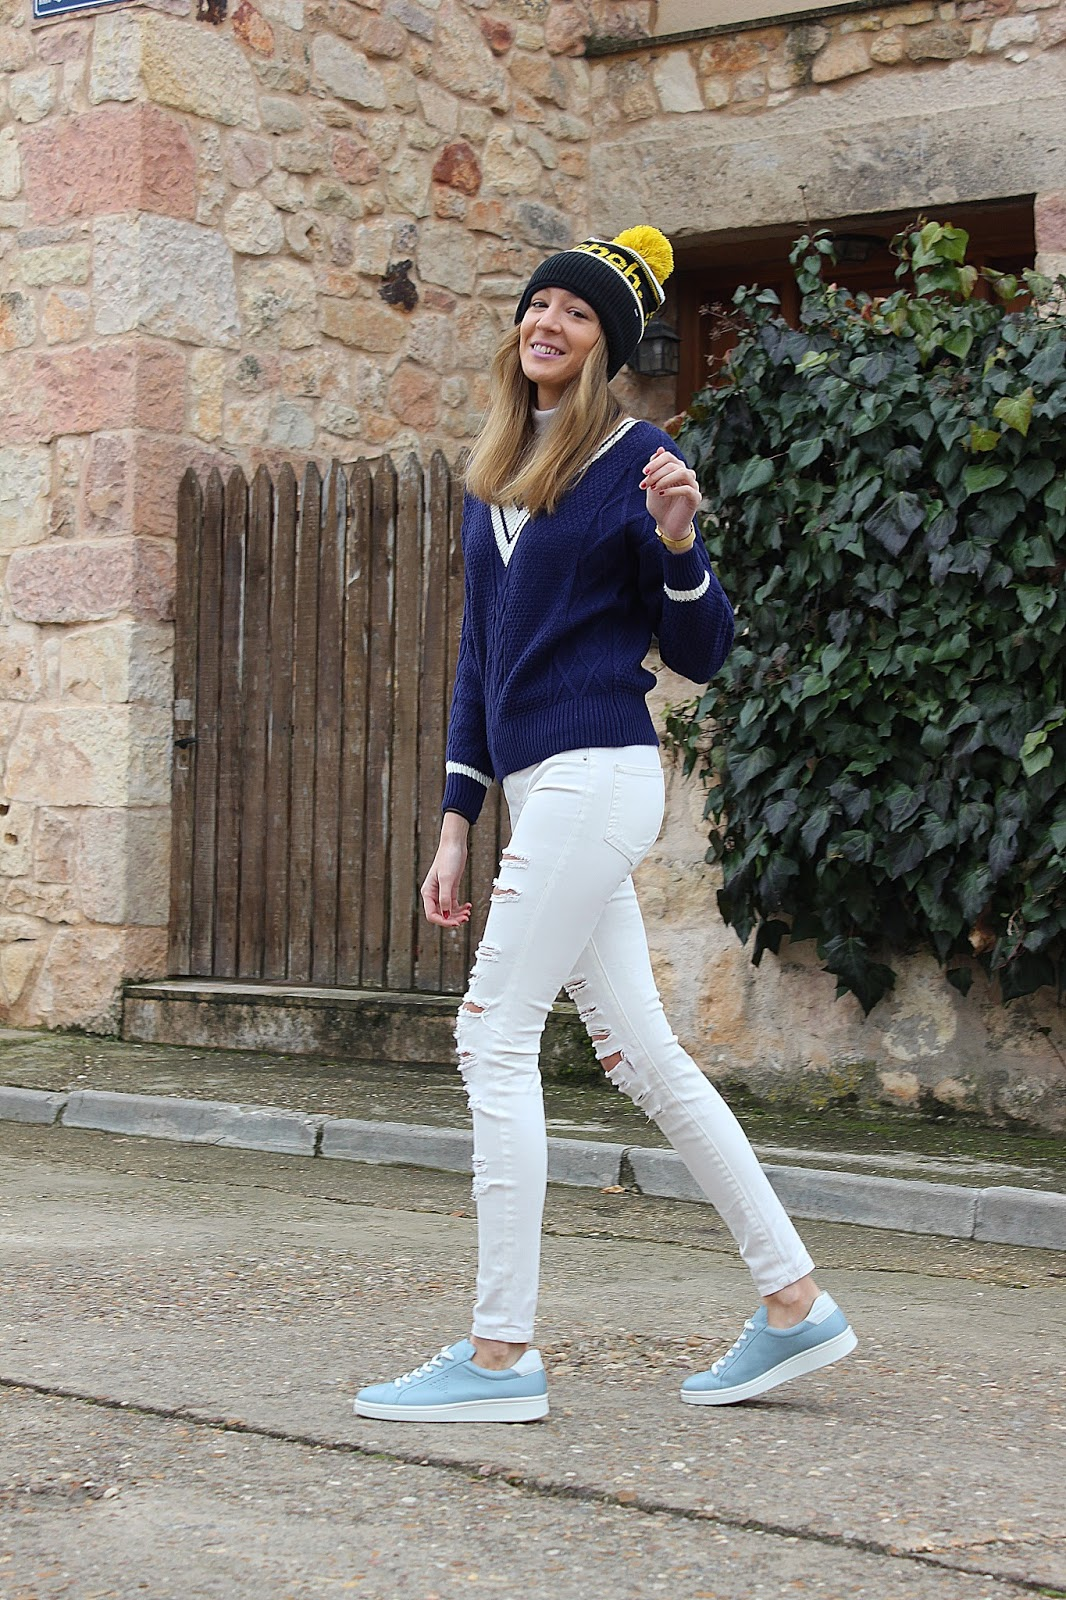 v-neck-swater-knit-street-style-ecco-shoes-sneakers-ripped-jeans